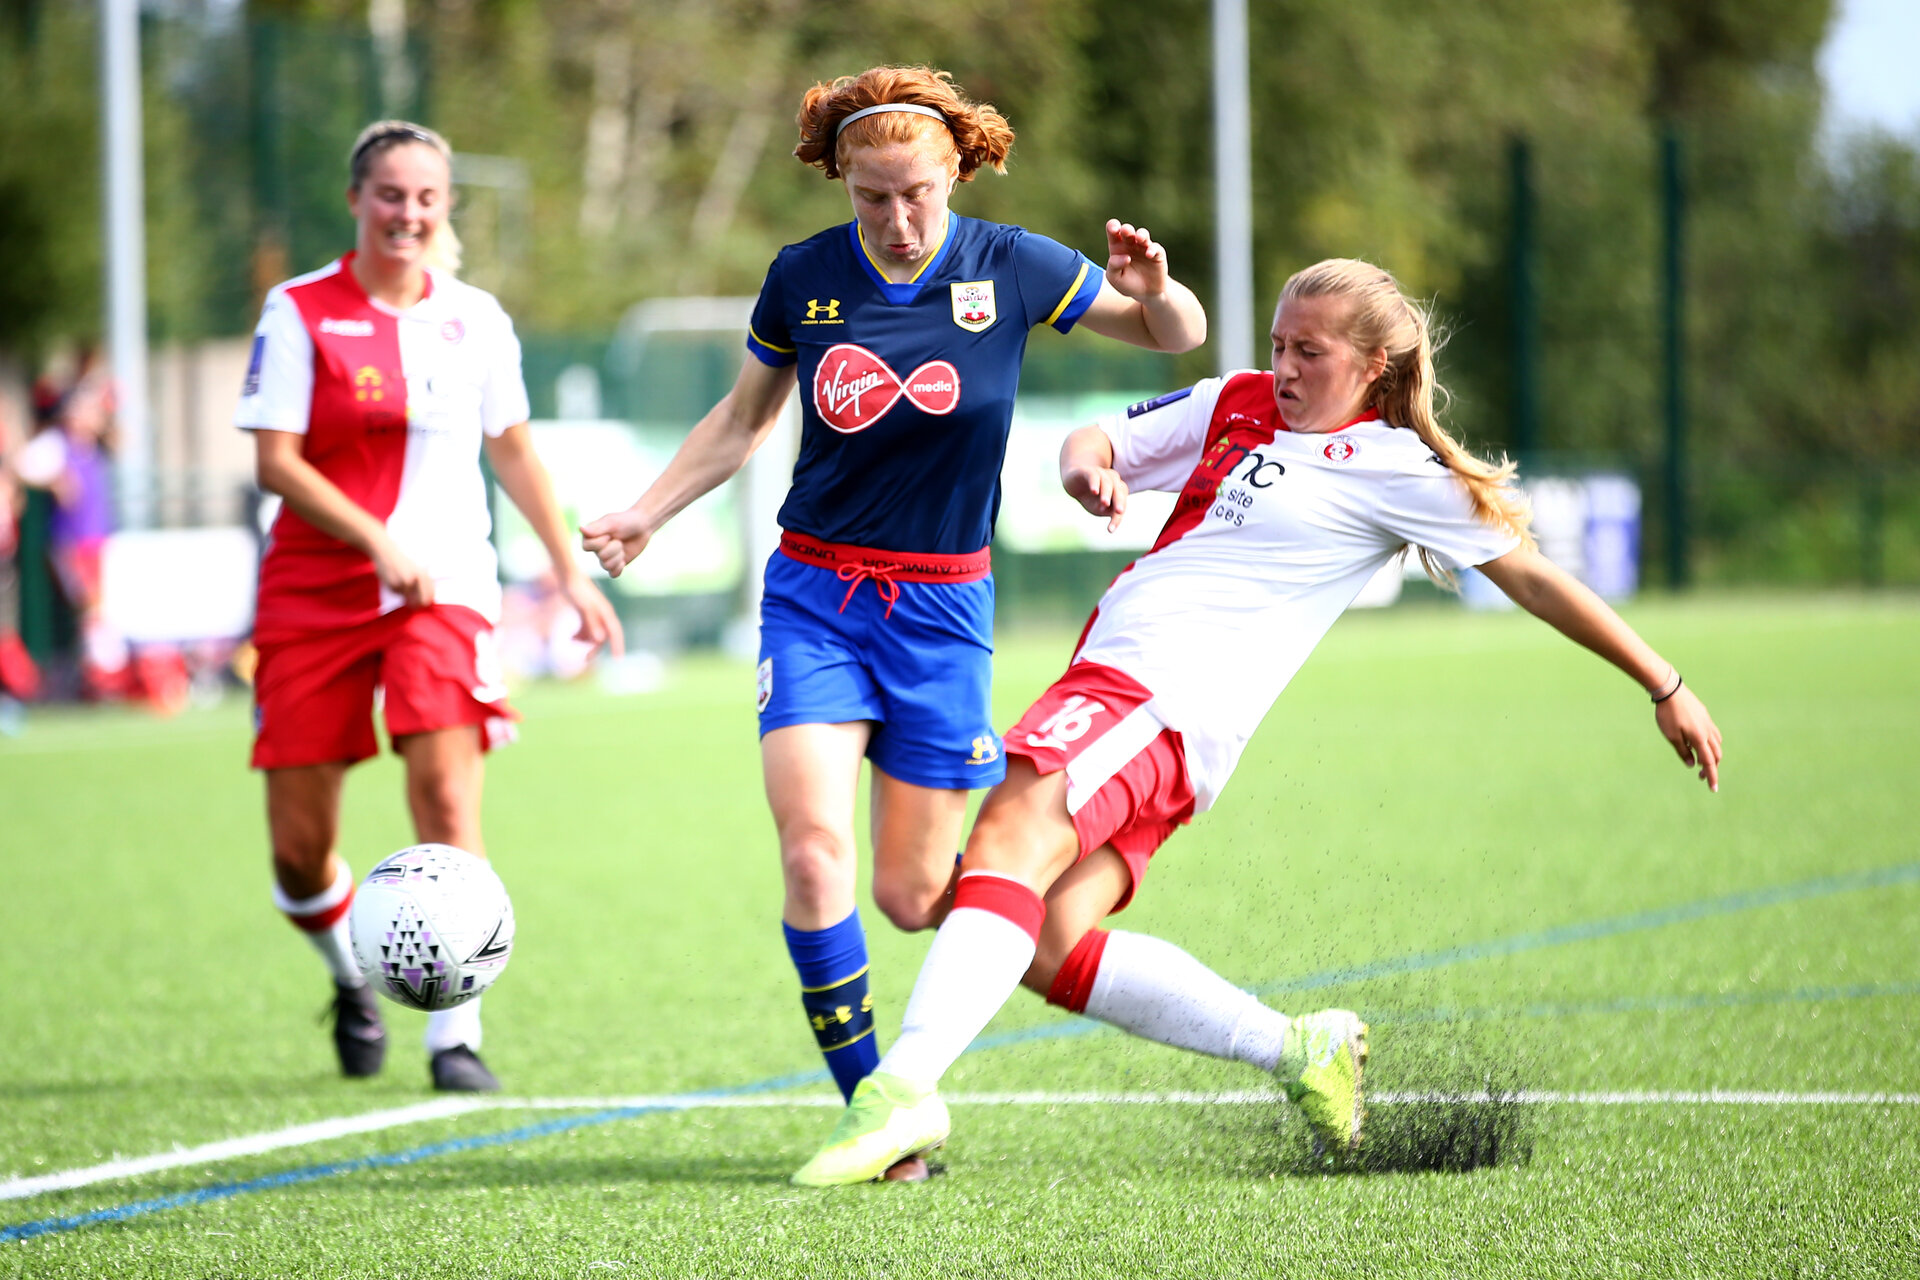 SOUTHAMPTON, ENGLAND - SEPTEMBER 20: during the FAWNL match between Southampton Women and Poole Town FC at Specsavers County Ground on September 20, 2020 in Poole, England. (Photo by Isabelle Field/Southampton FC via Getty Images)